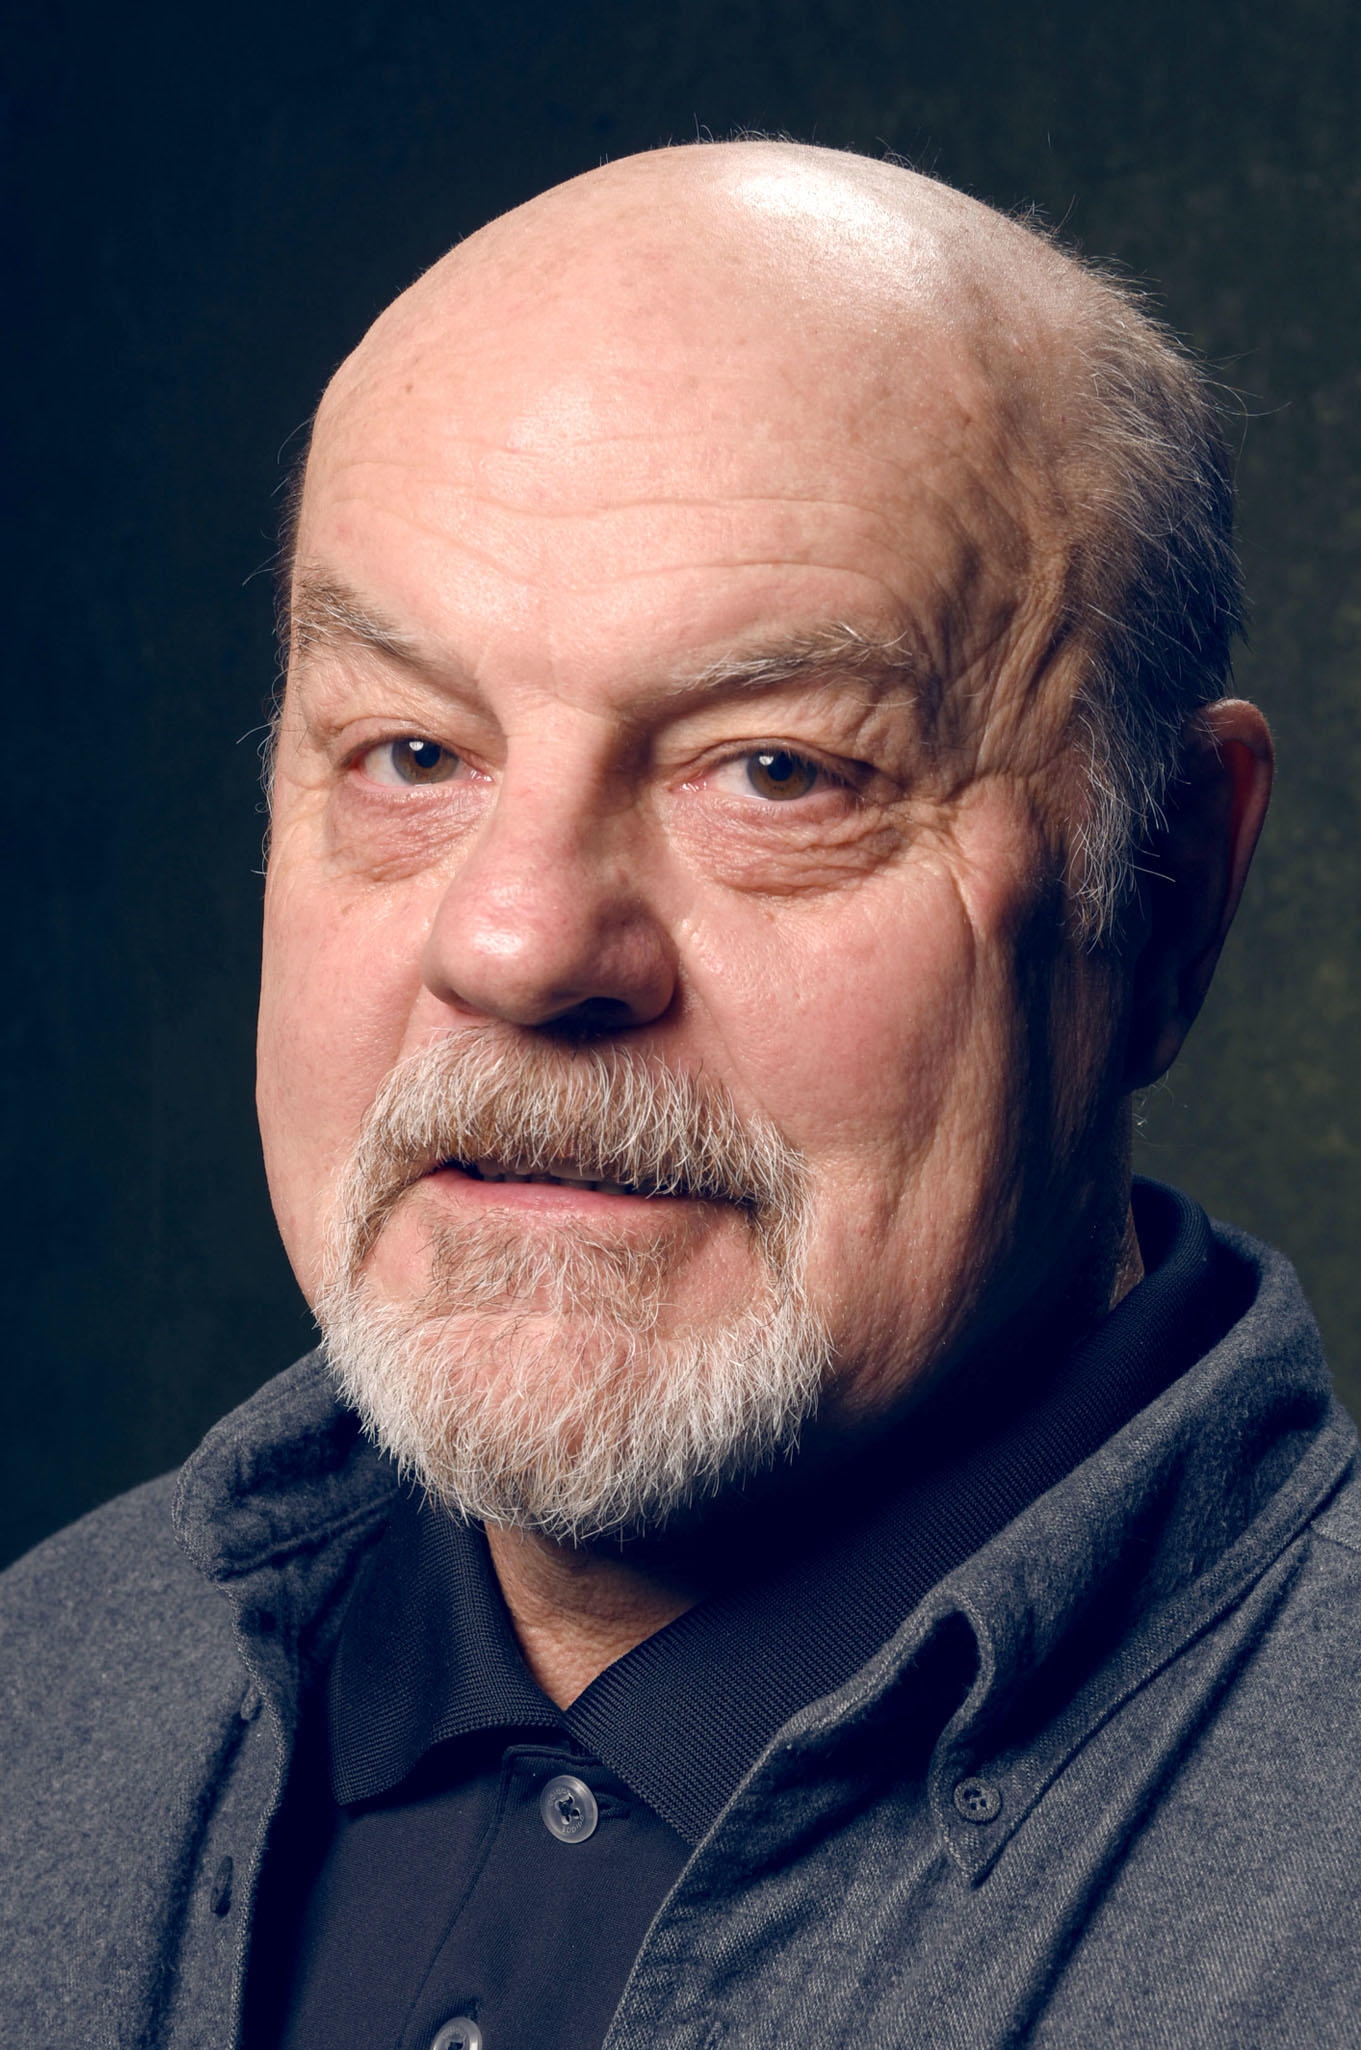 Michael Ironside during the 2015 Sundance Film Festival.